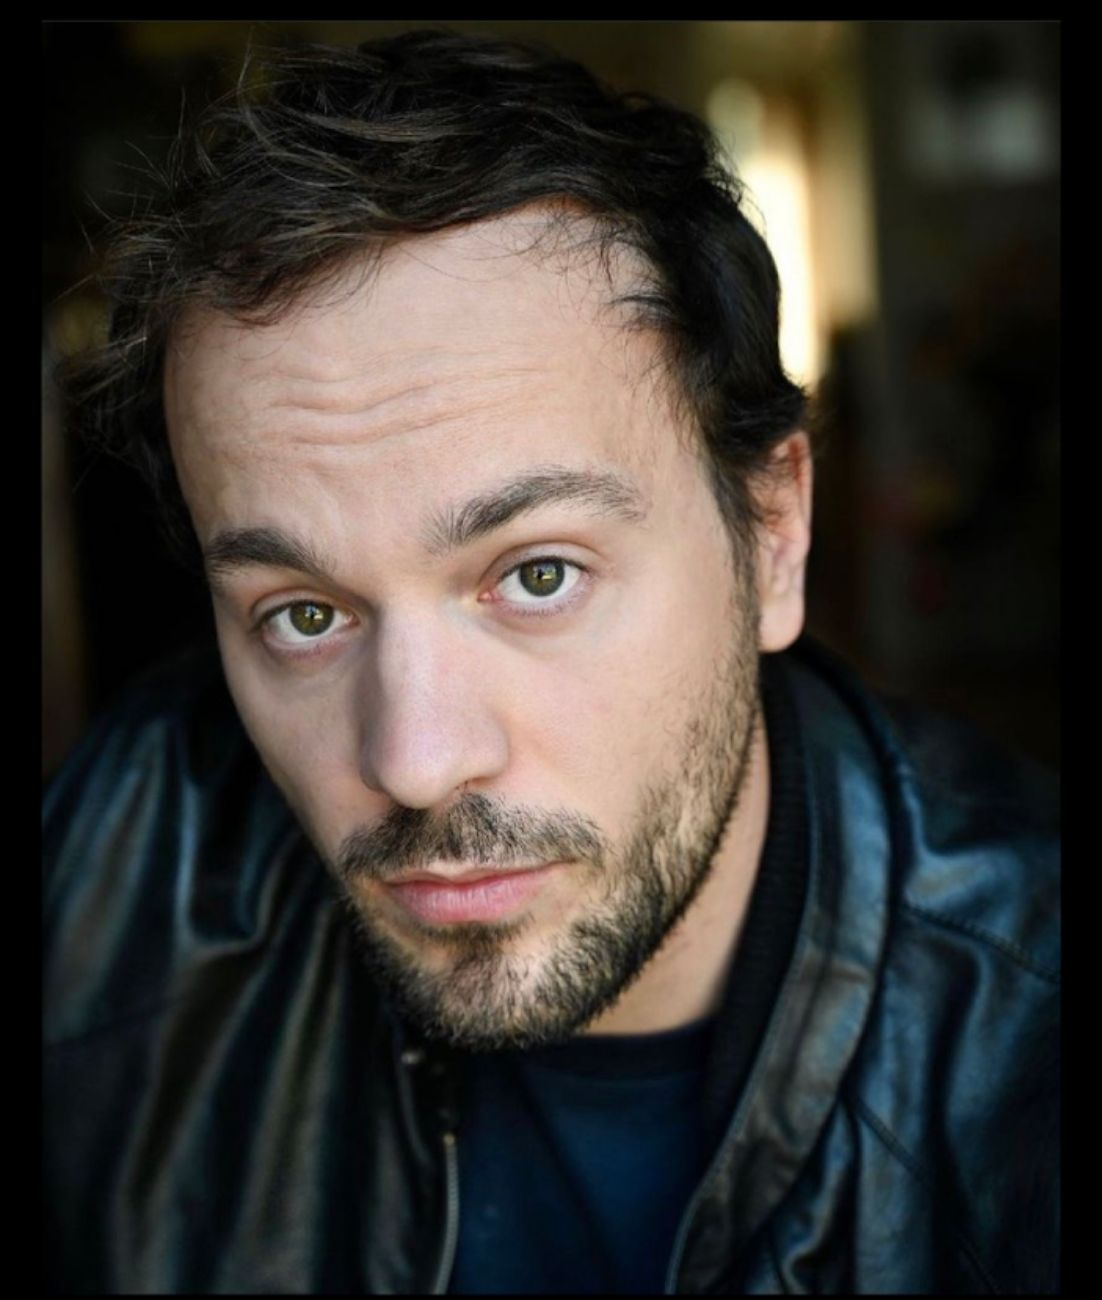 MULTI-AWARD WINNING ACTOR FILIP SERTIC JOINS CAST OF 'THIS GAME'S CALLED MURDER' !